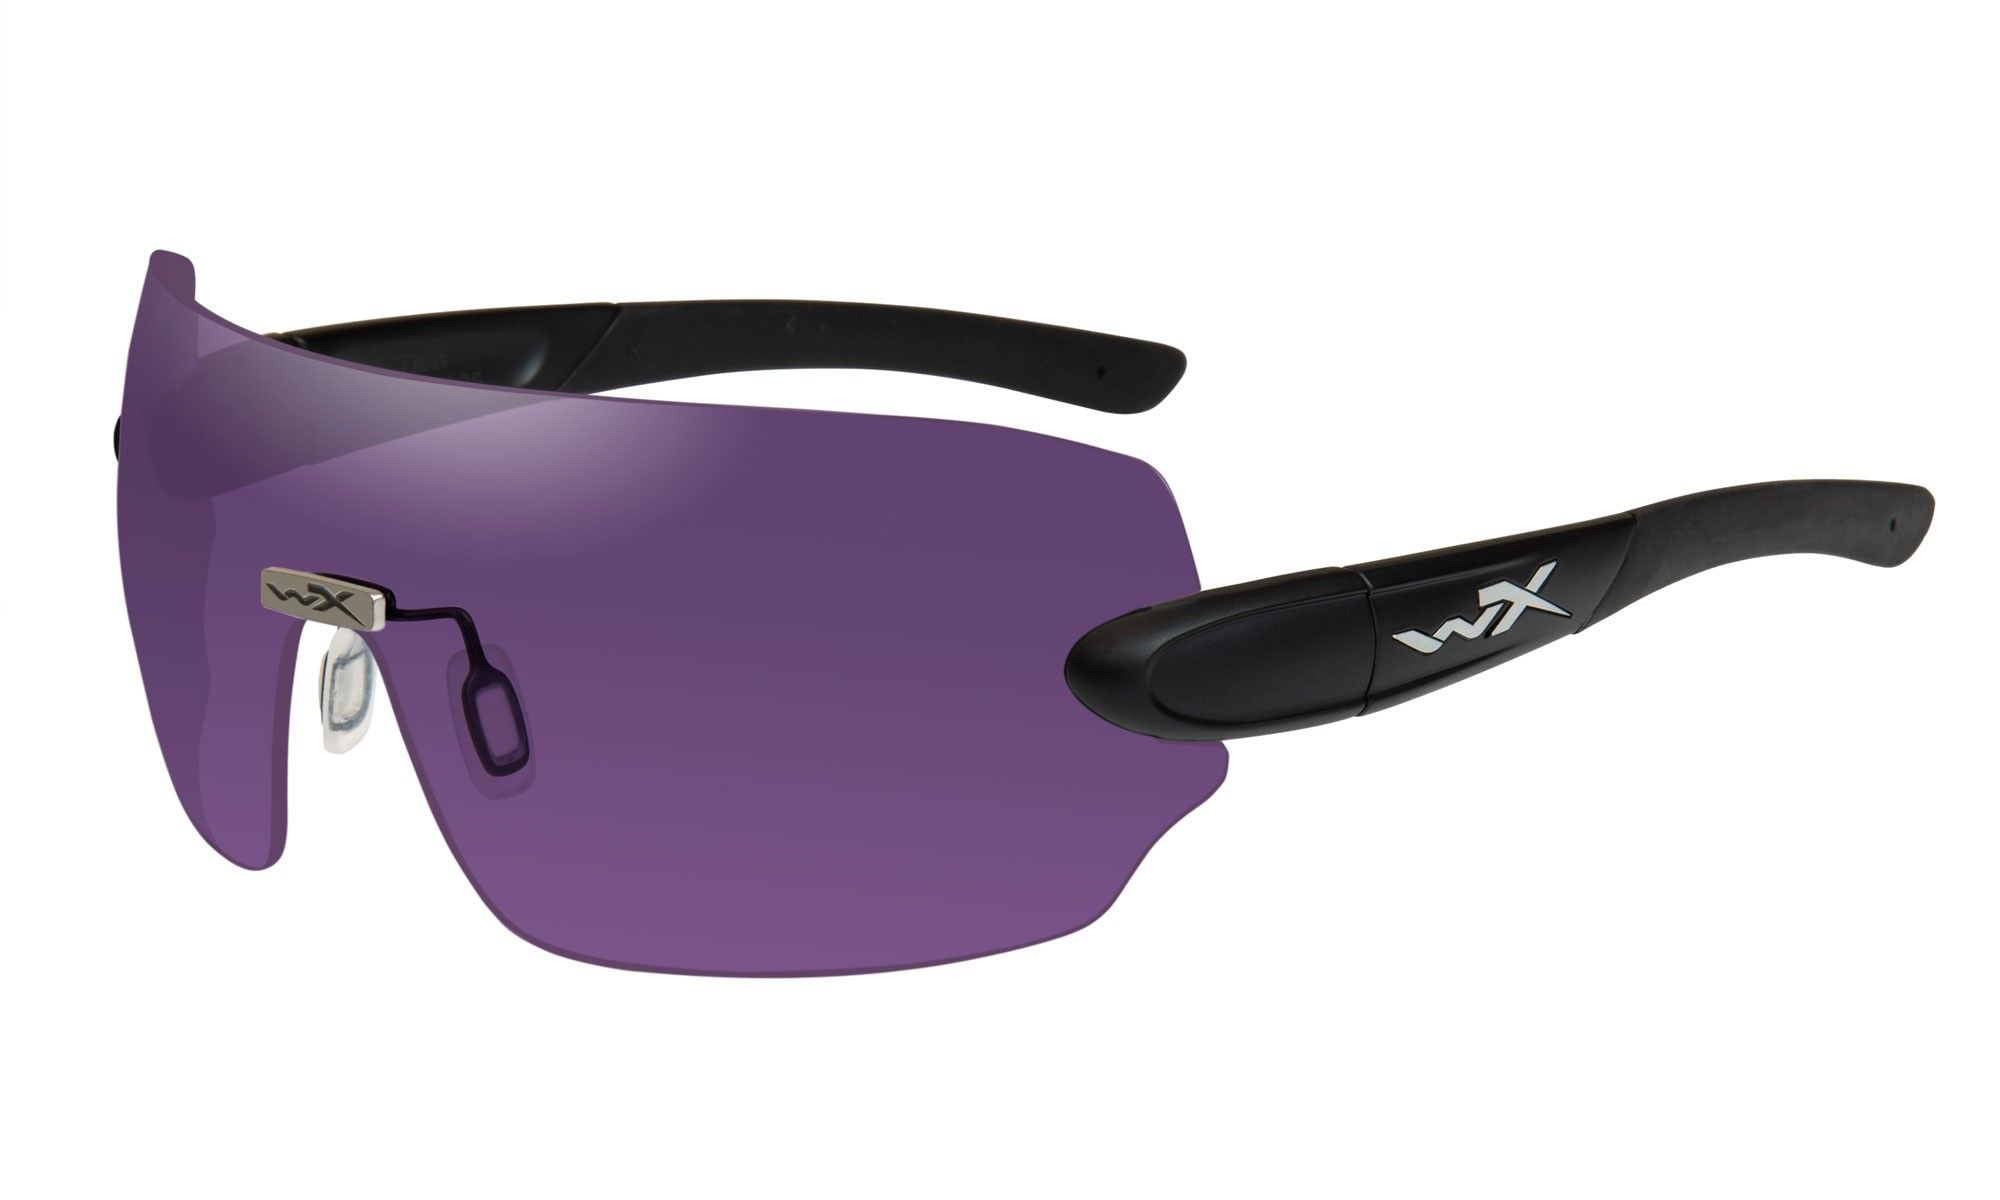 Brand new for 2019, Wiley X Detection is a game-changer in premium shooting eyewear. (Photo: Wiley X)